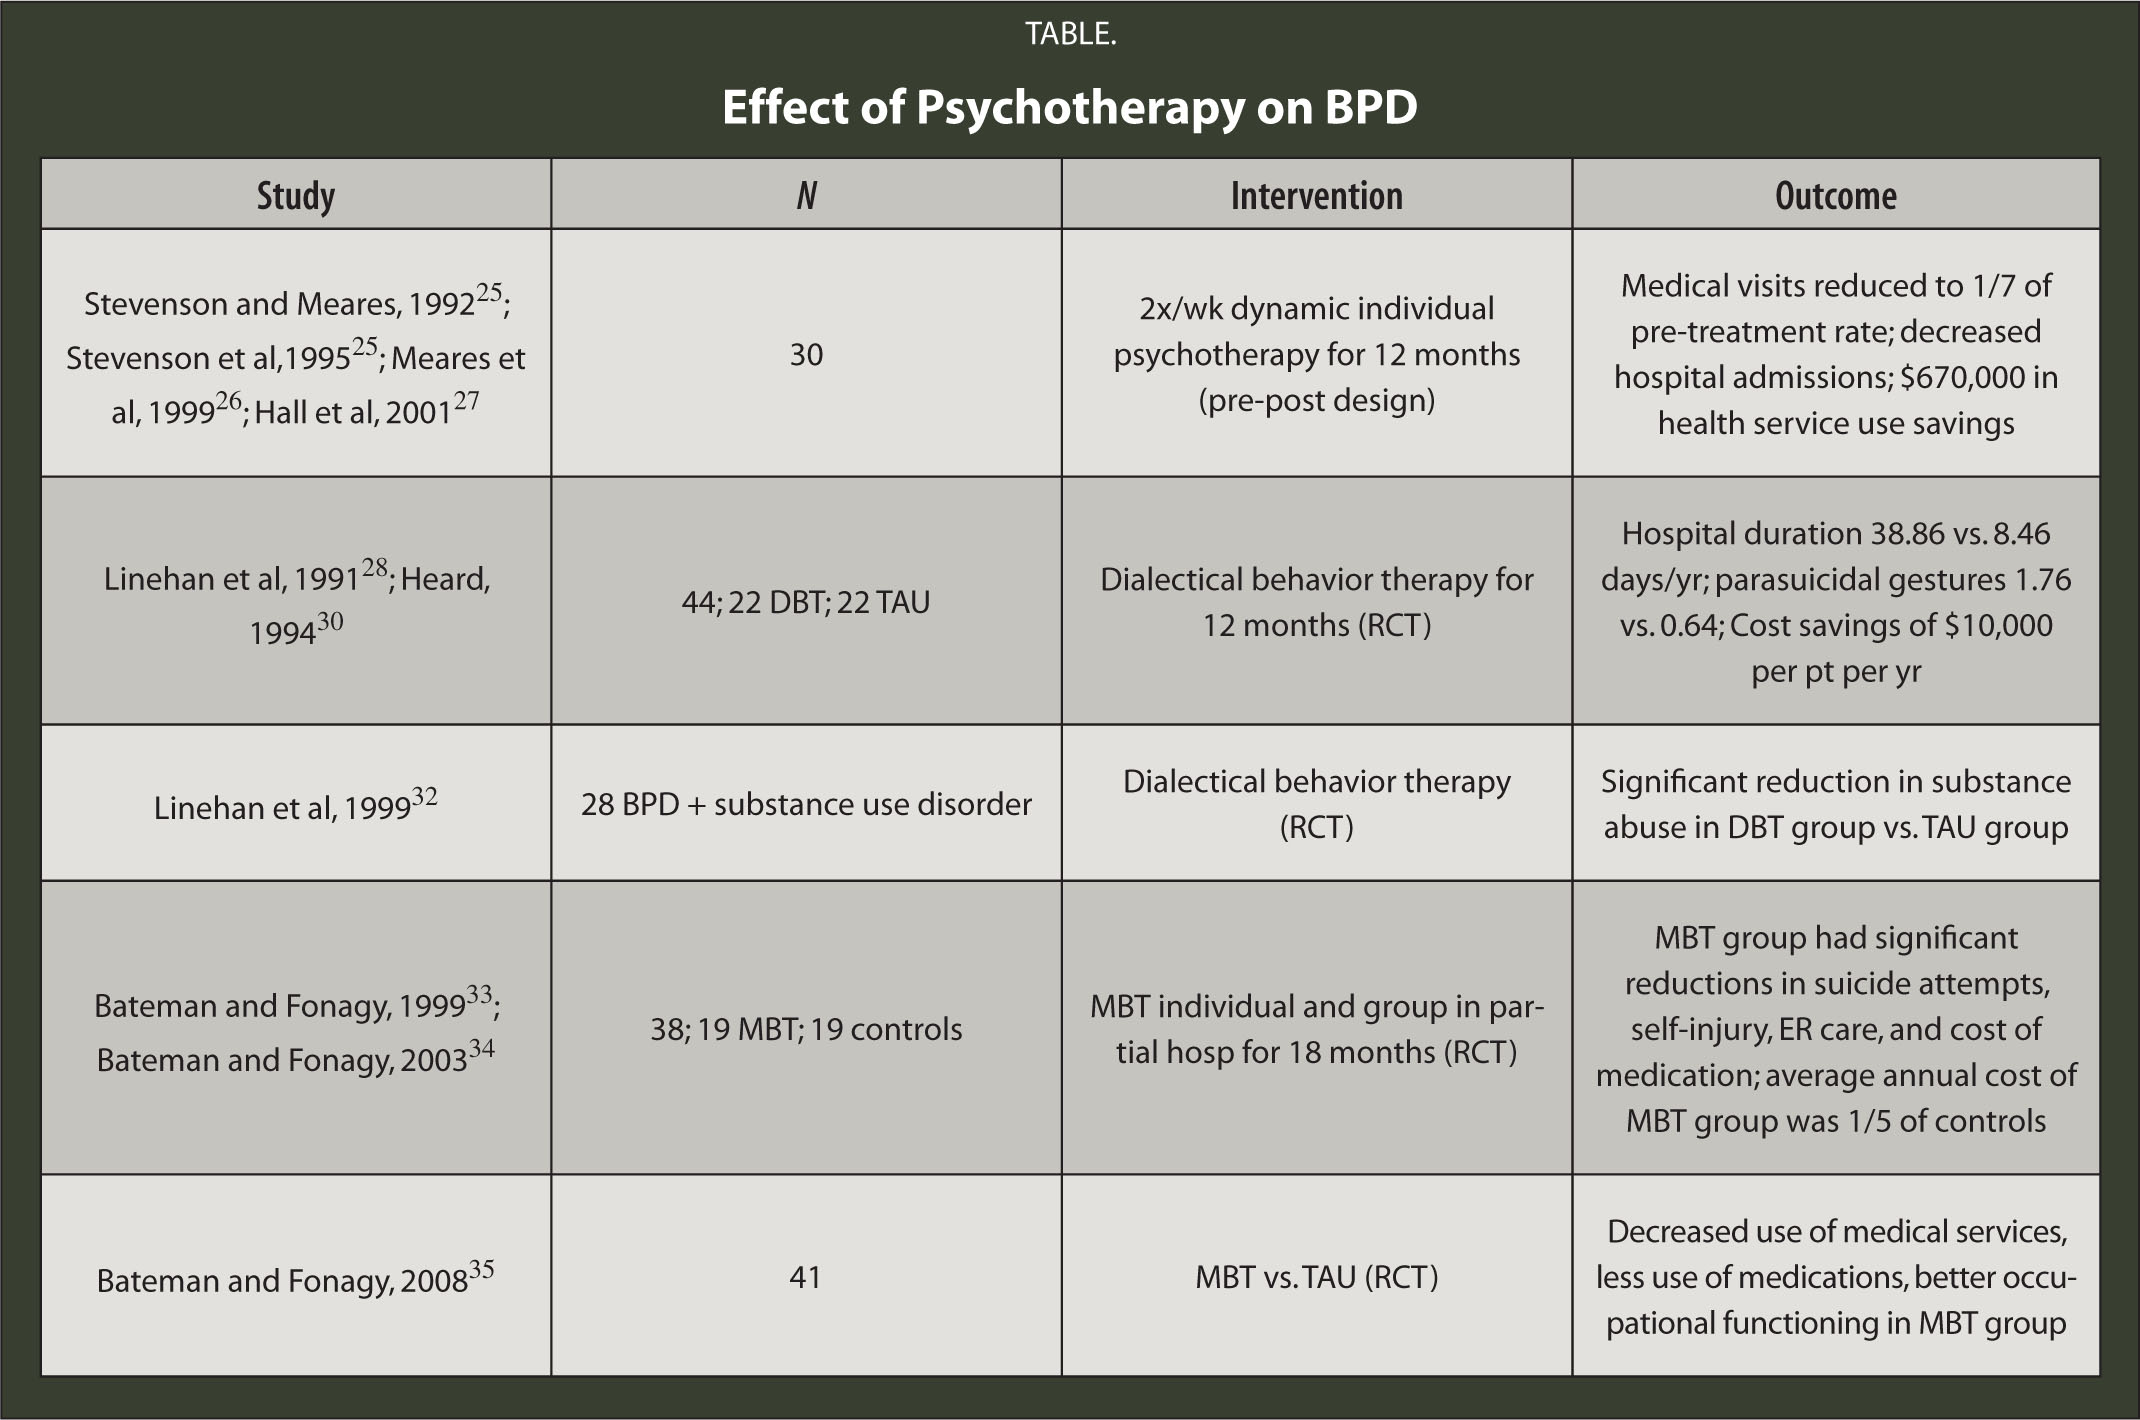 Effect of Psychotherapy on BPD